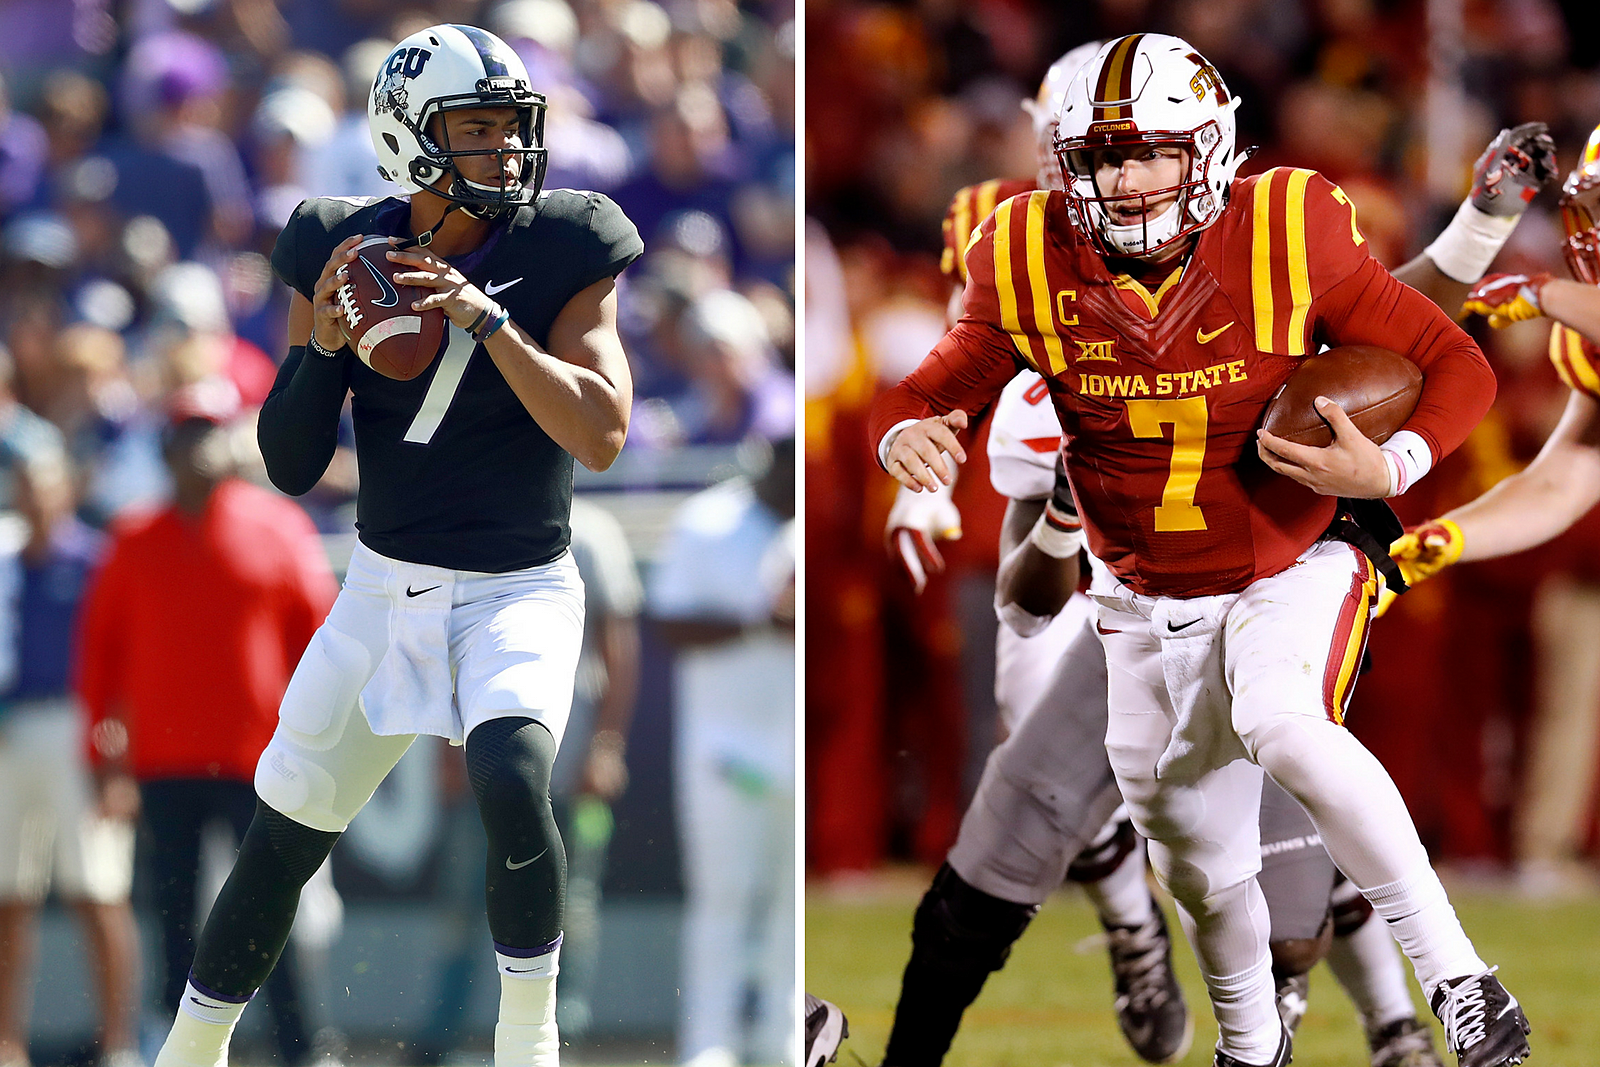 Iowa State knocks off unbeaten TCU